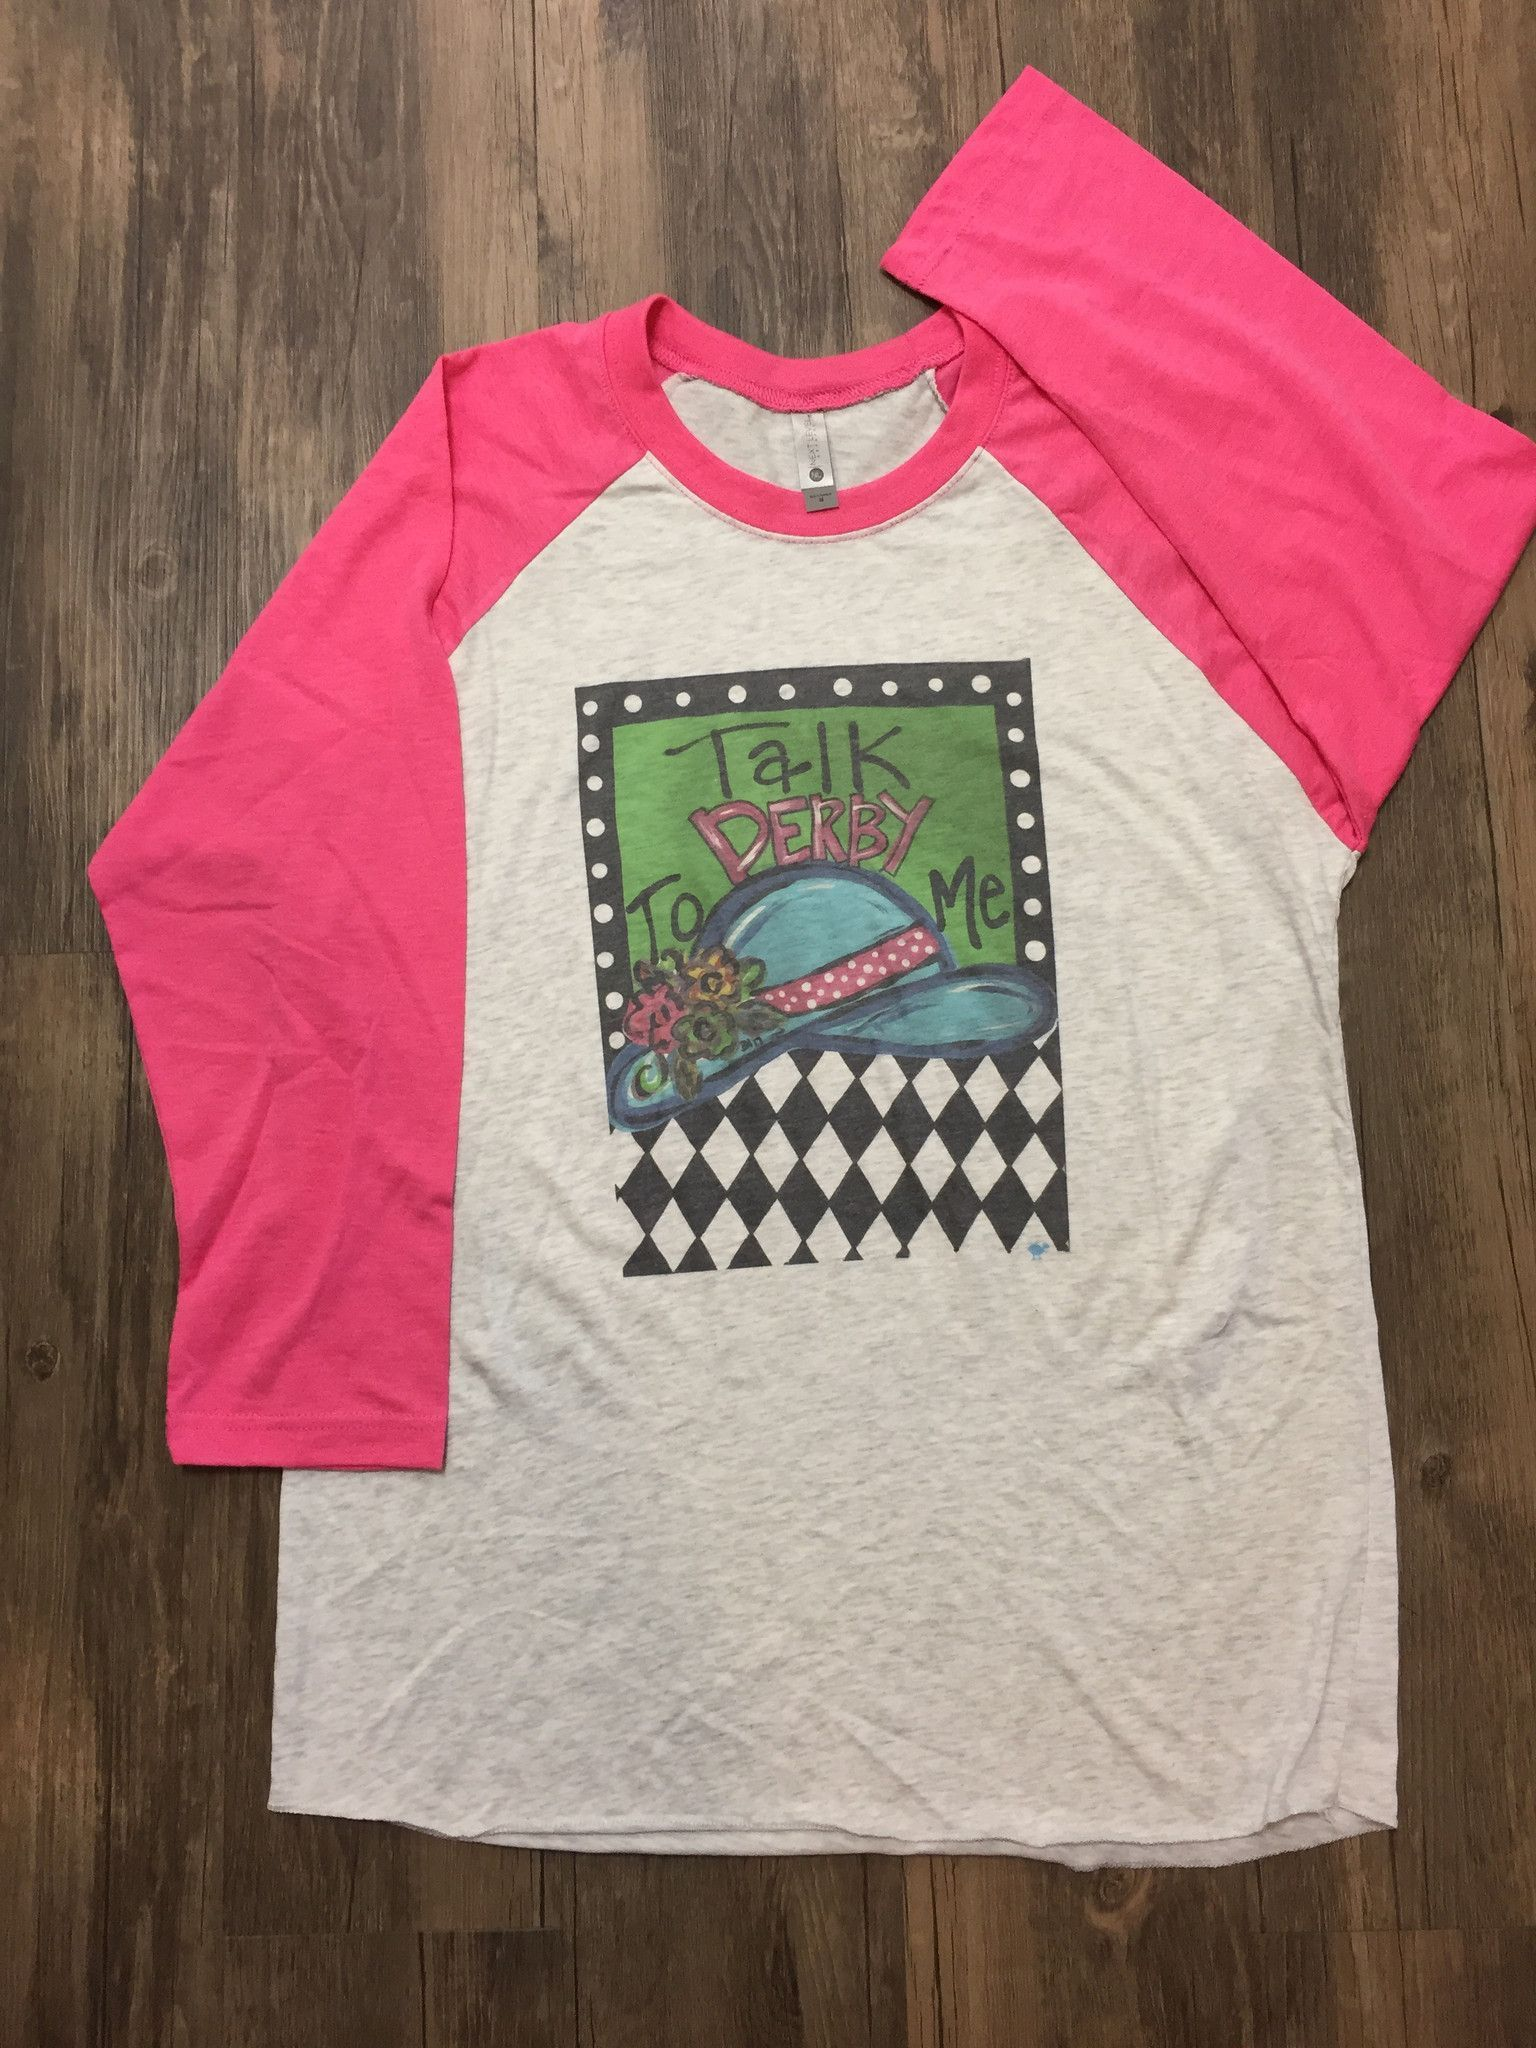 Southern Roots Talk Derby To Me Raglan